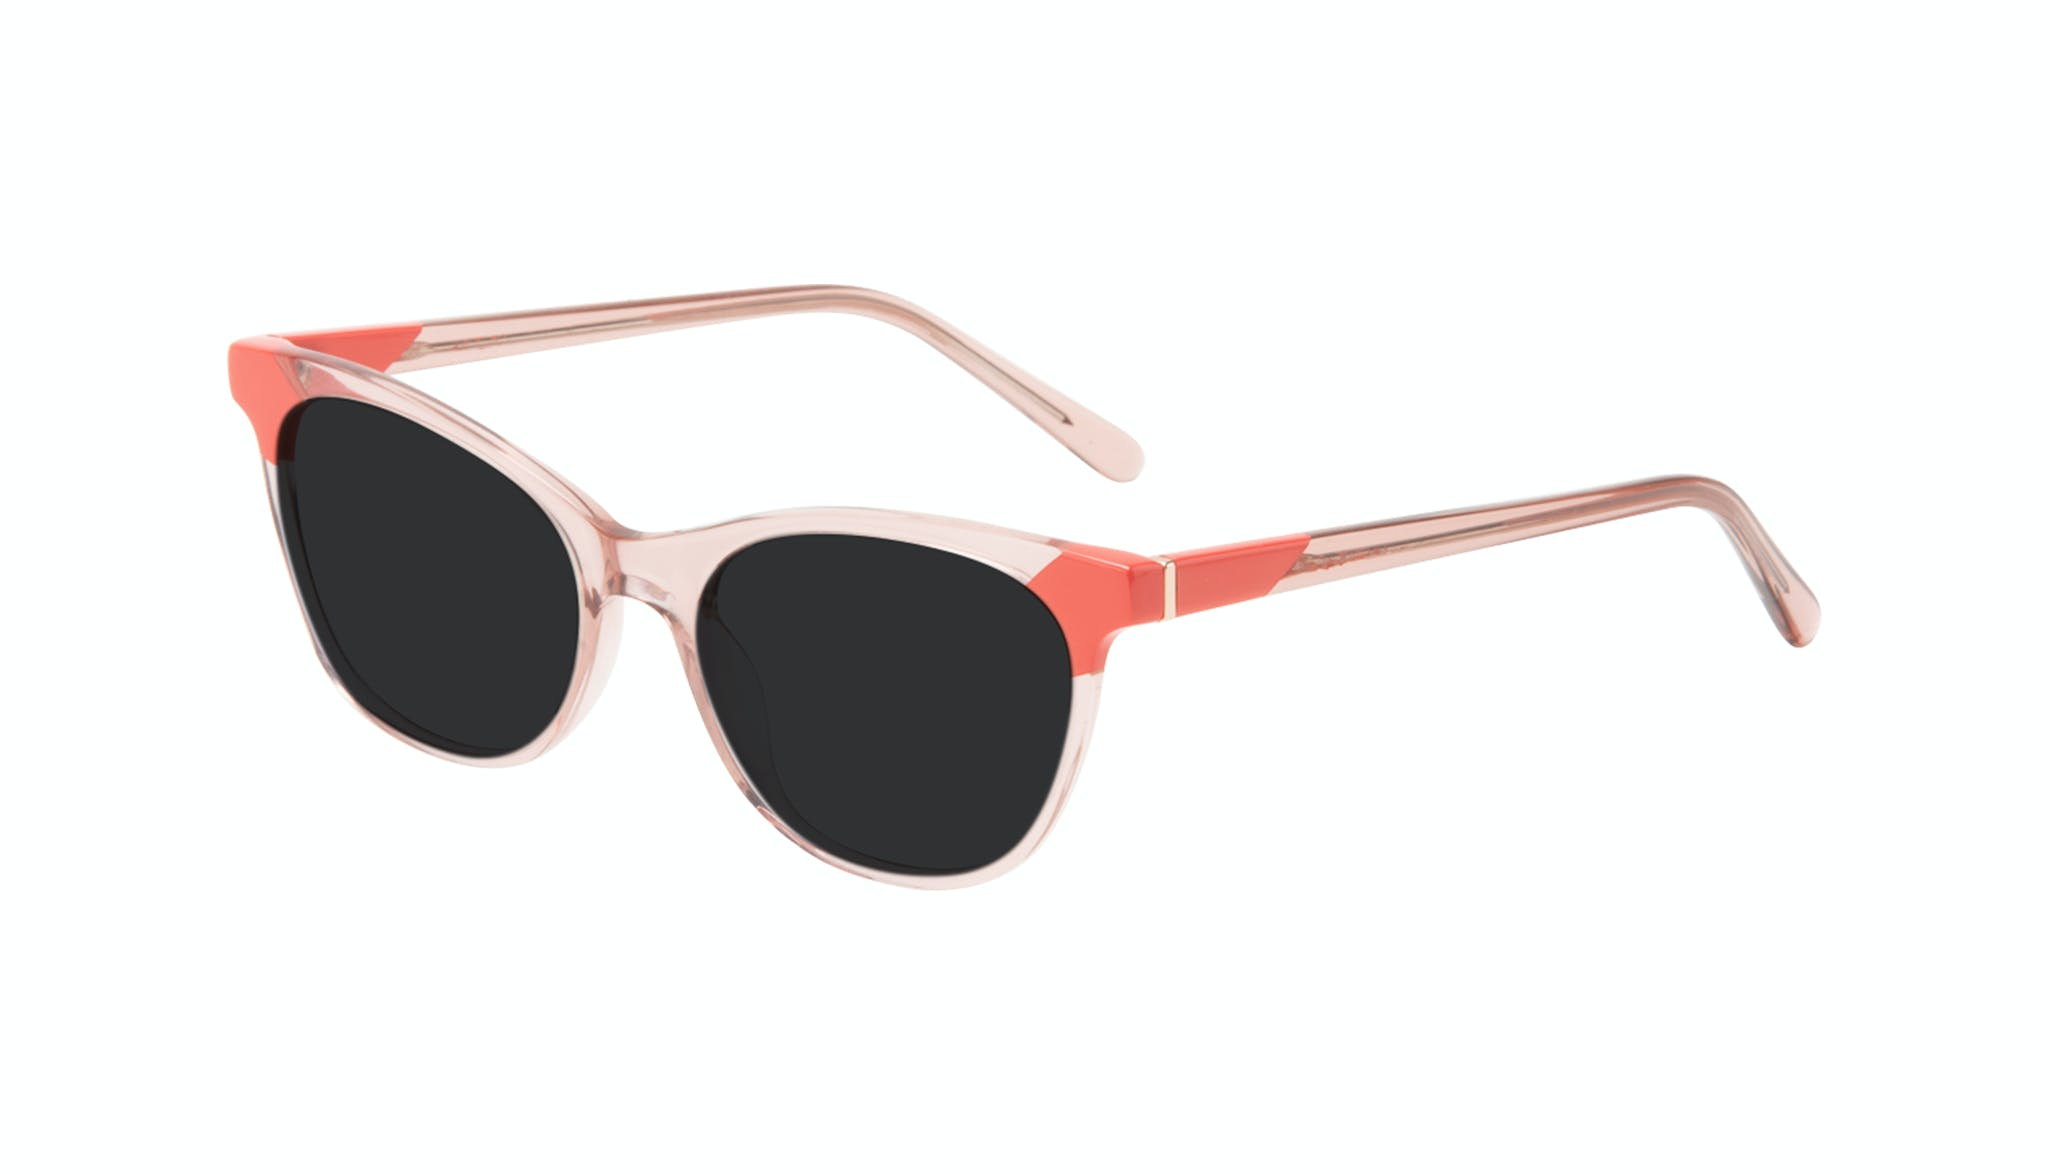 Affordable Fashion Glasses Cat Eye Sunglasses Women Witty Pink Coral Tilt